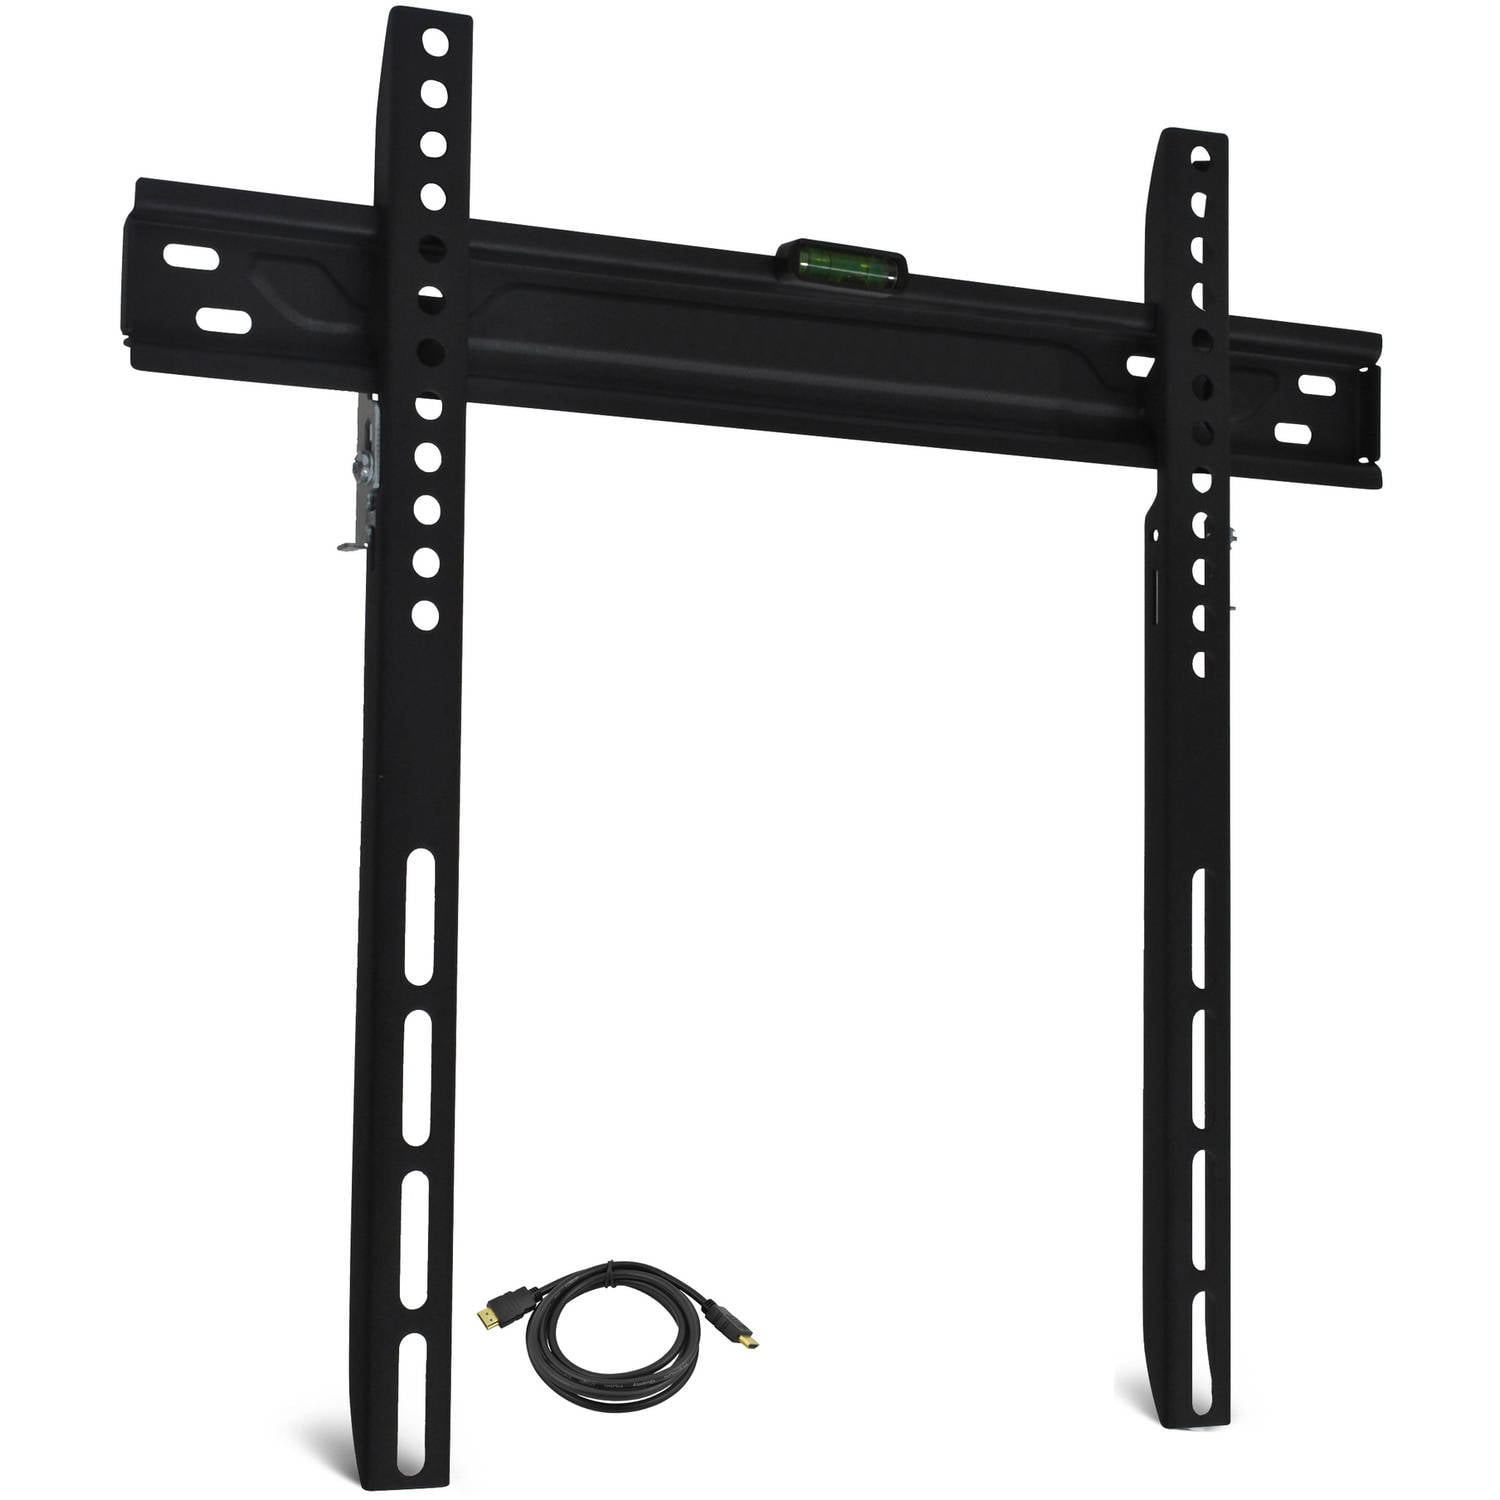 Onn Large Tilting Tv Wall Mount For 47 80 Tvs Hospital Bed Having Wireless Data On Wiring Box